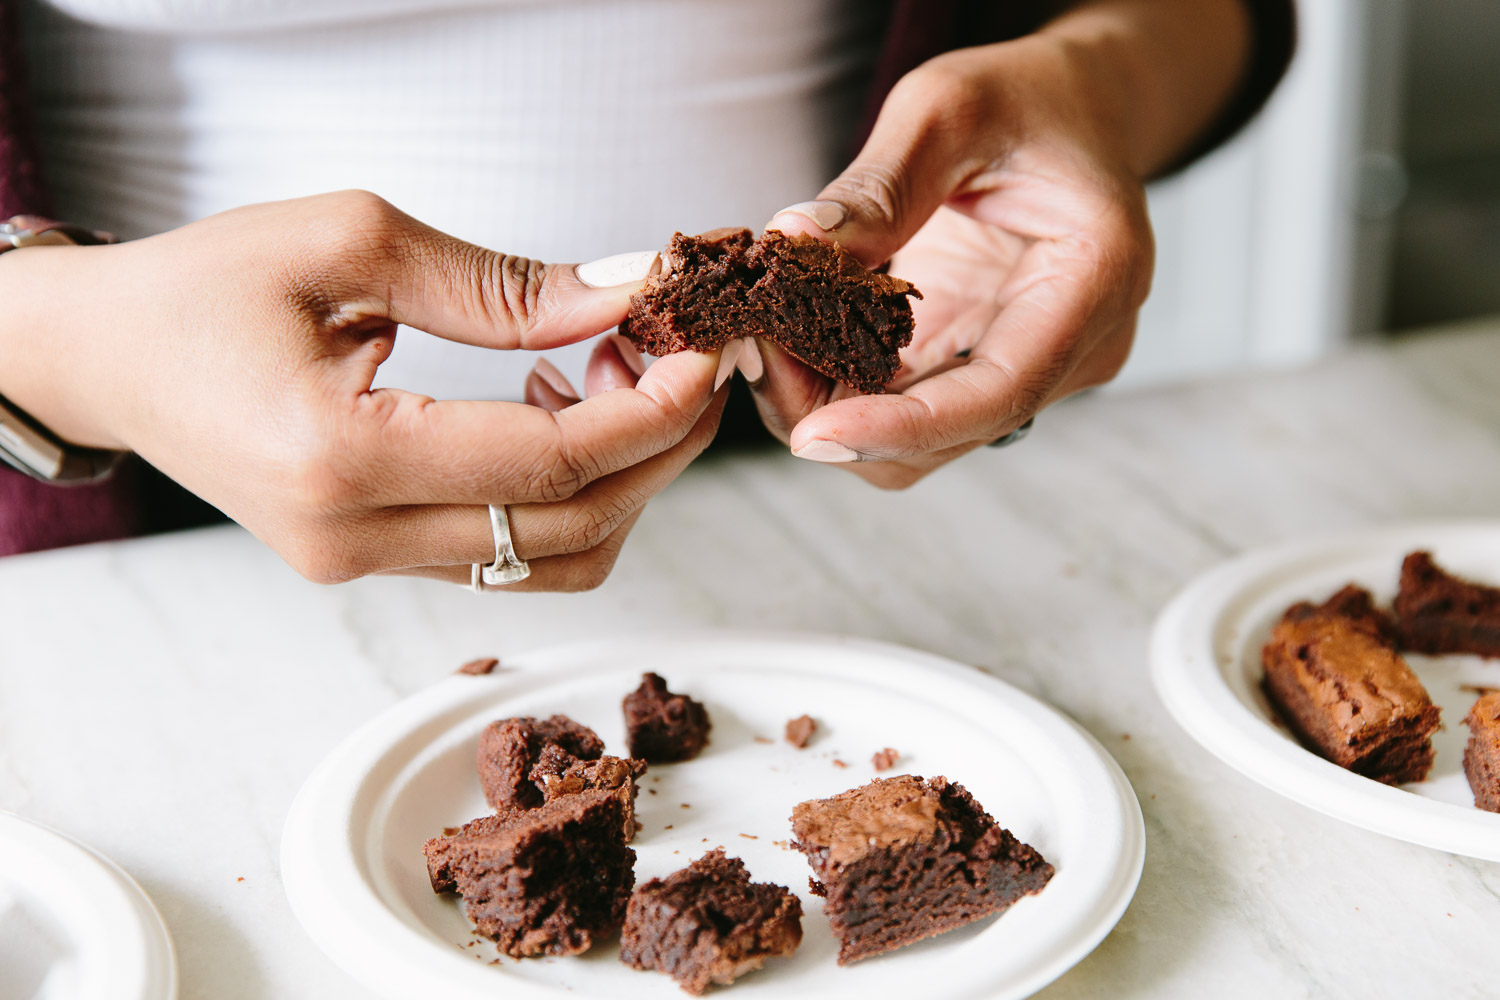 Best Brownie Mix 2020 The Best Boxed Brownie Mix: A Taste Test! | A Cup of Jo